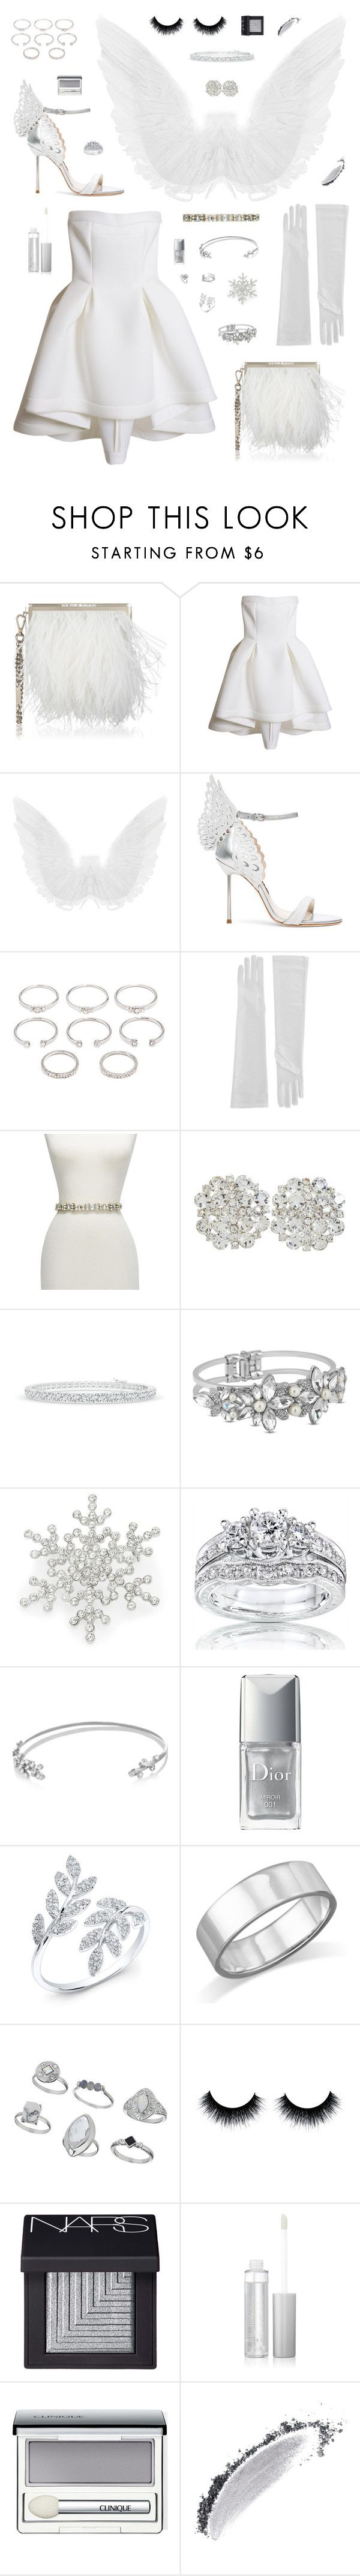 """""""Snow Angel Halloween Costume"""" by belenloperfido ❤ liked on Polyvore featuring Jimmy Choo, Parlor, Sophia Webster, Forever 21, GUESS by Marciano, Matthew Williamson, R.J. Graziano, Kobelli, Ryan Storer and Christian Dior"""